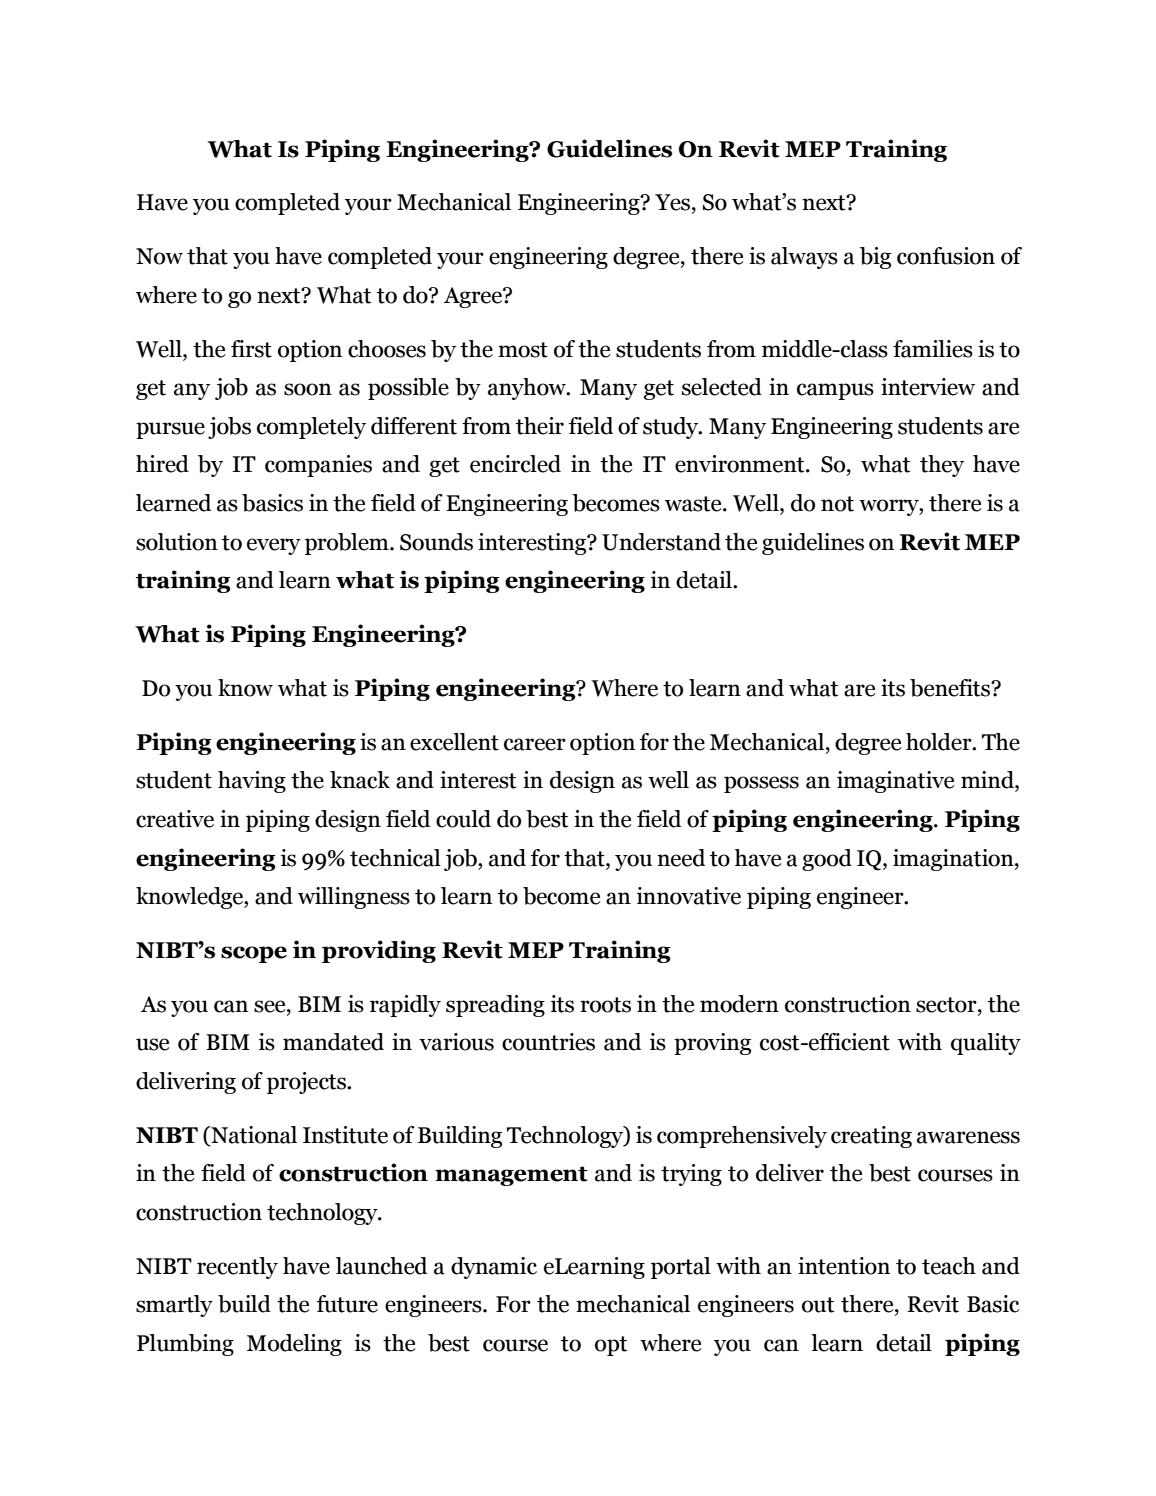 What is piping engineering by nibteducation - issuu